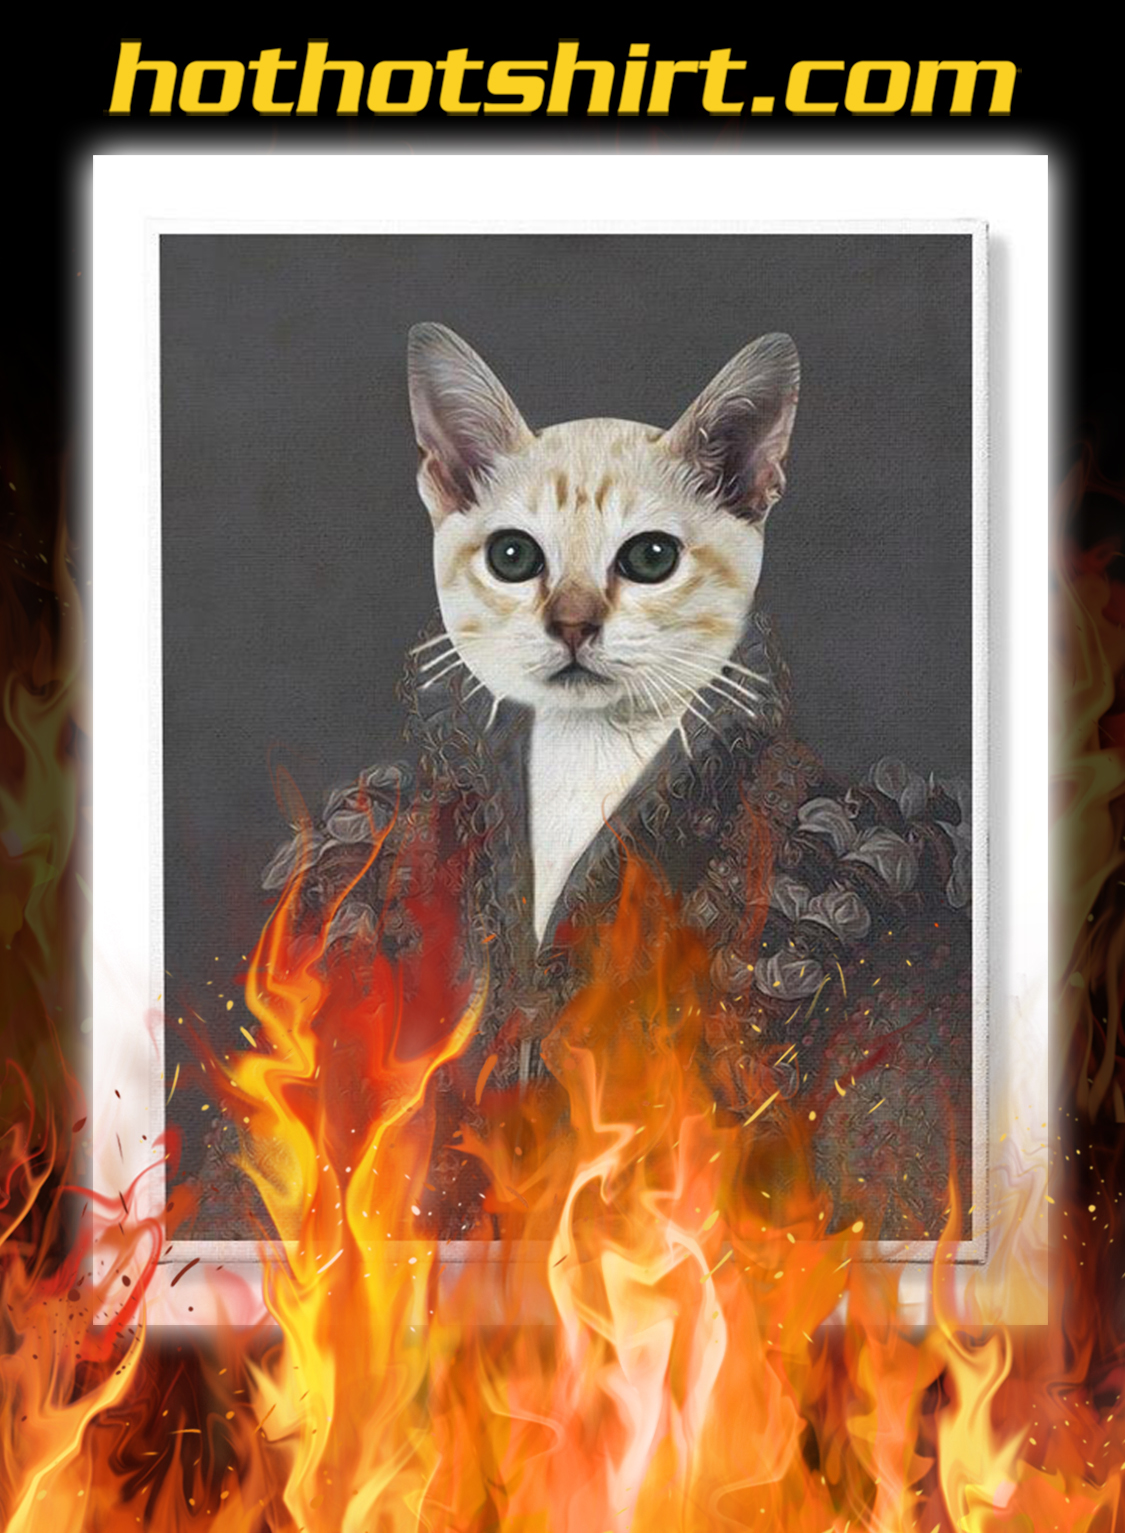 Personalized custom cat and pet photo canvas prints- pic 2